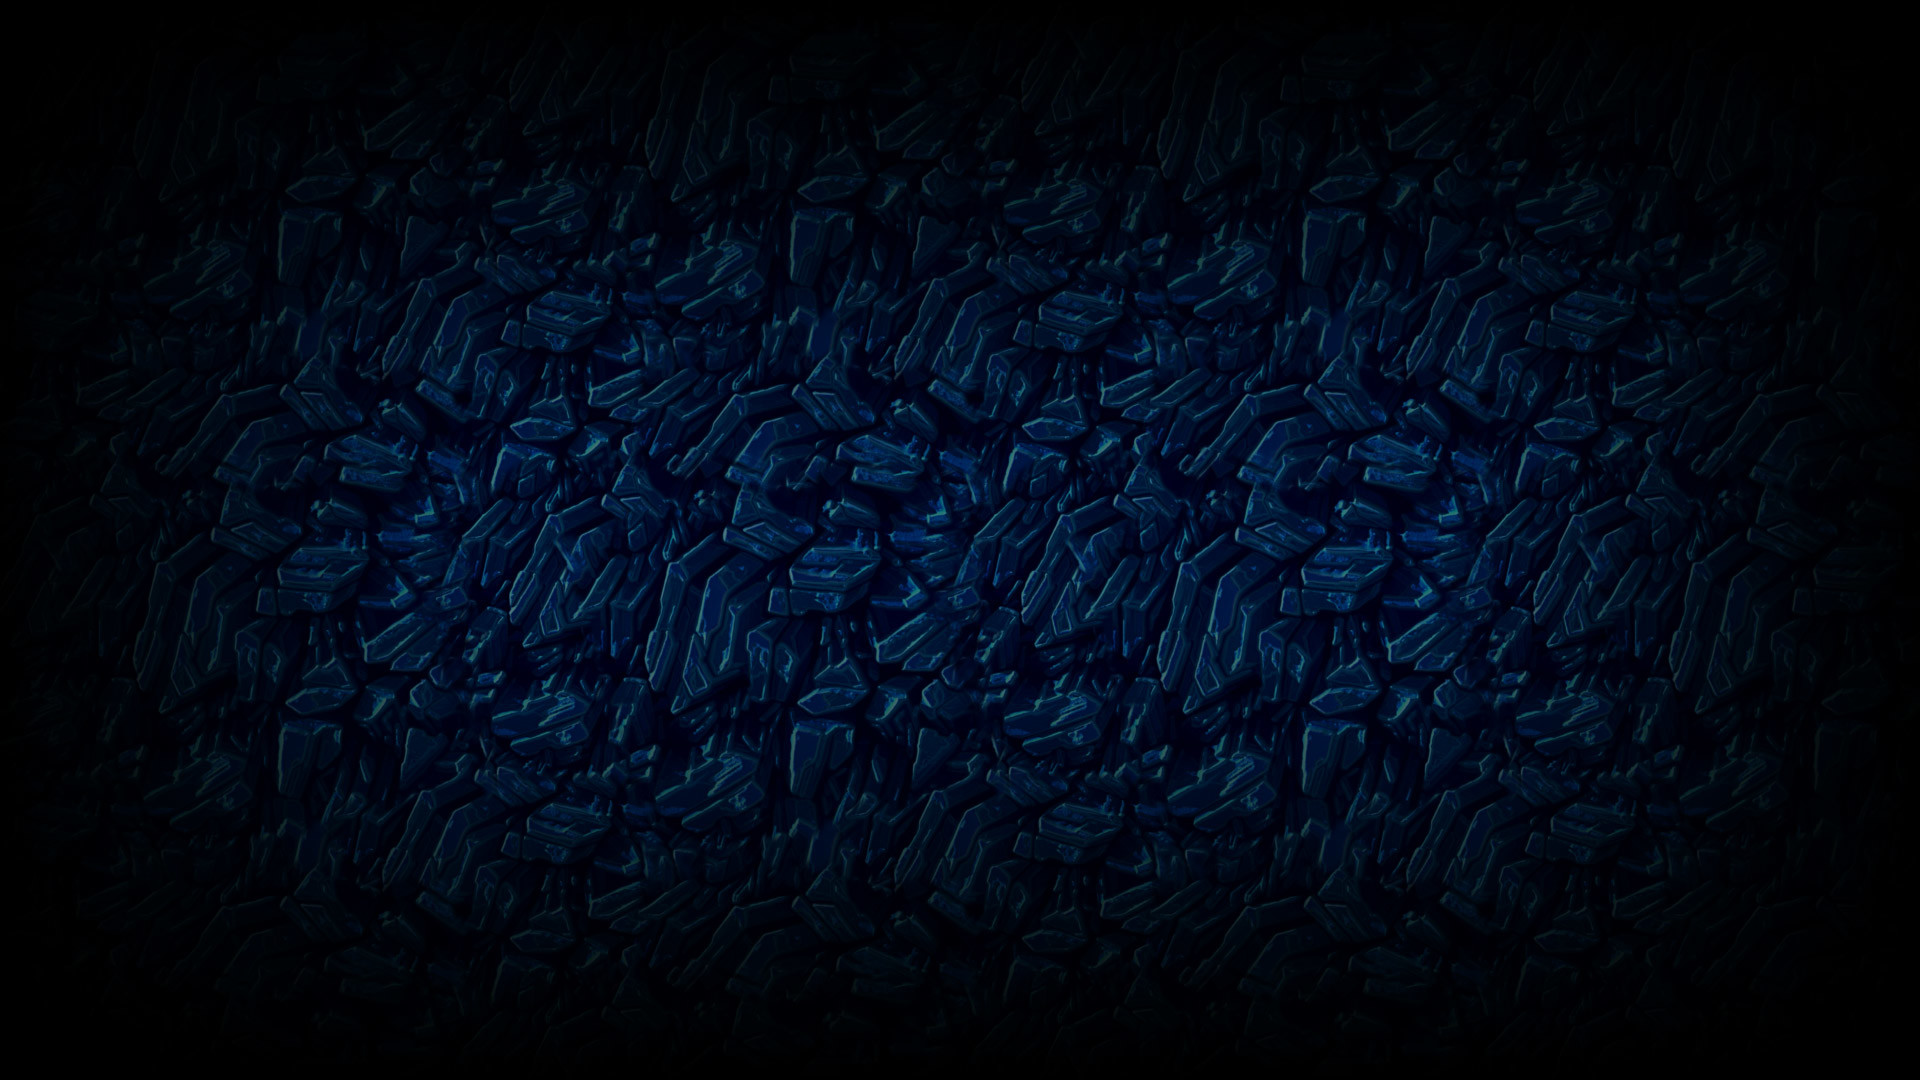 1920x1080 Blue Crystal - Darkout Uncommon Profile Background MARKET .